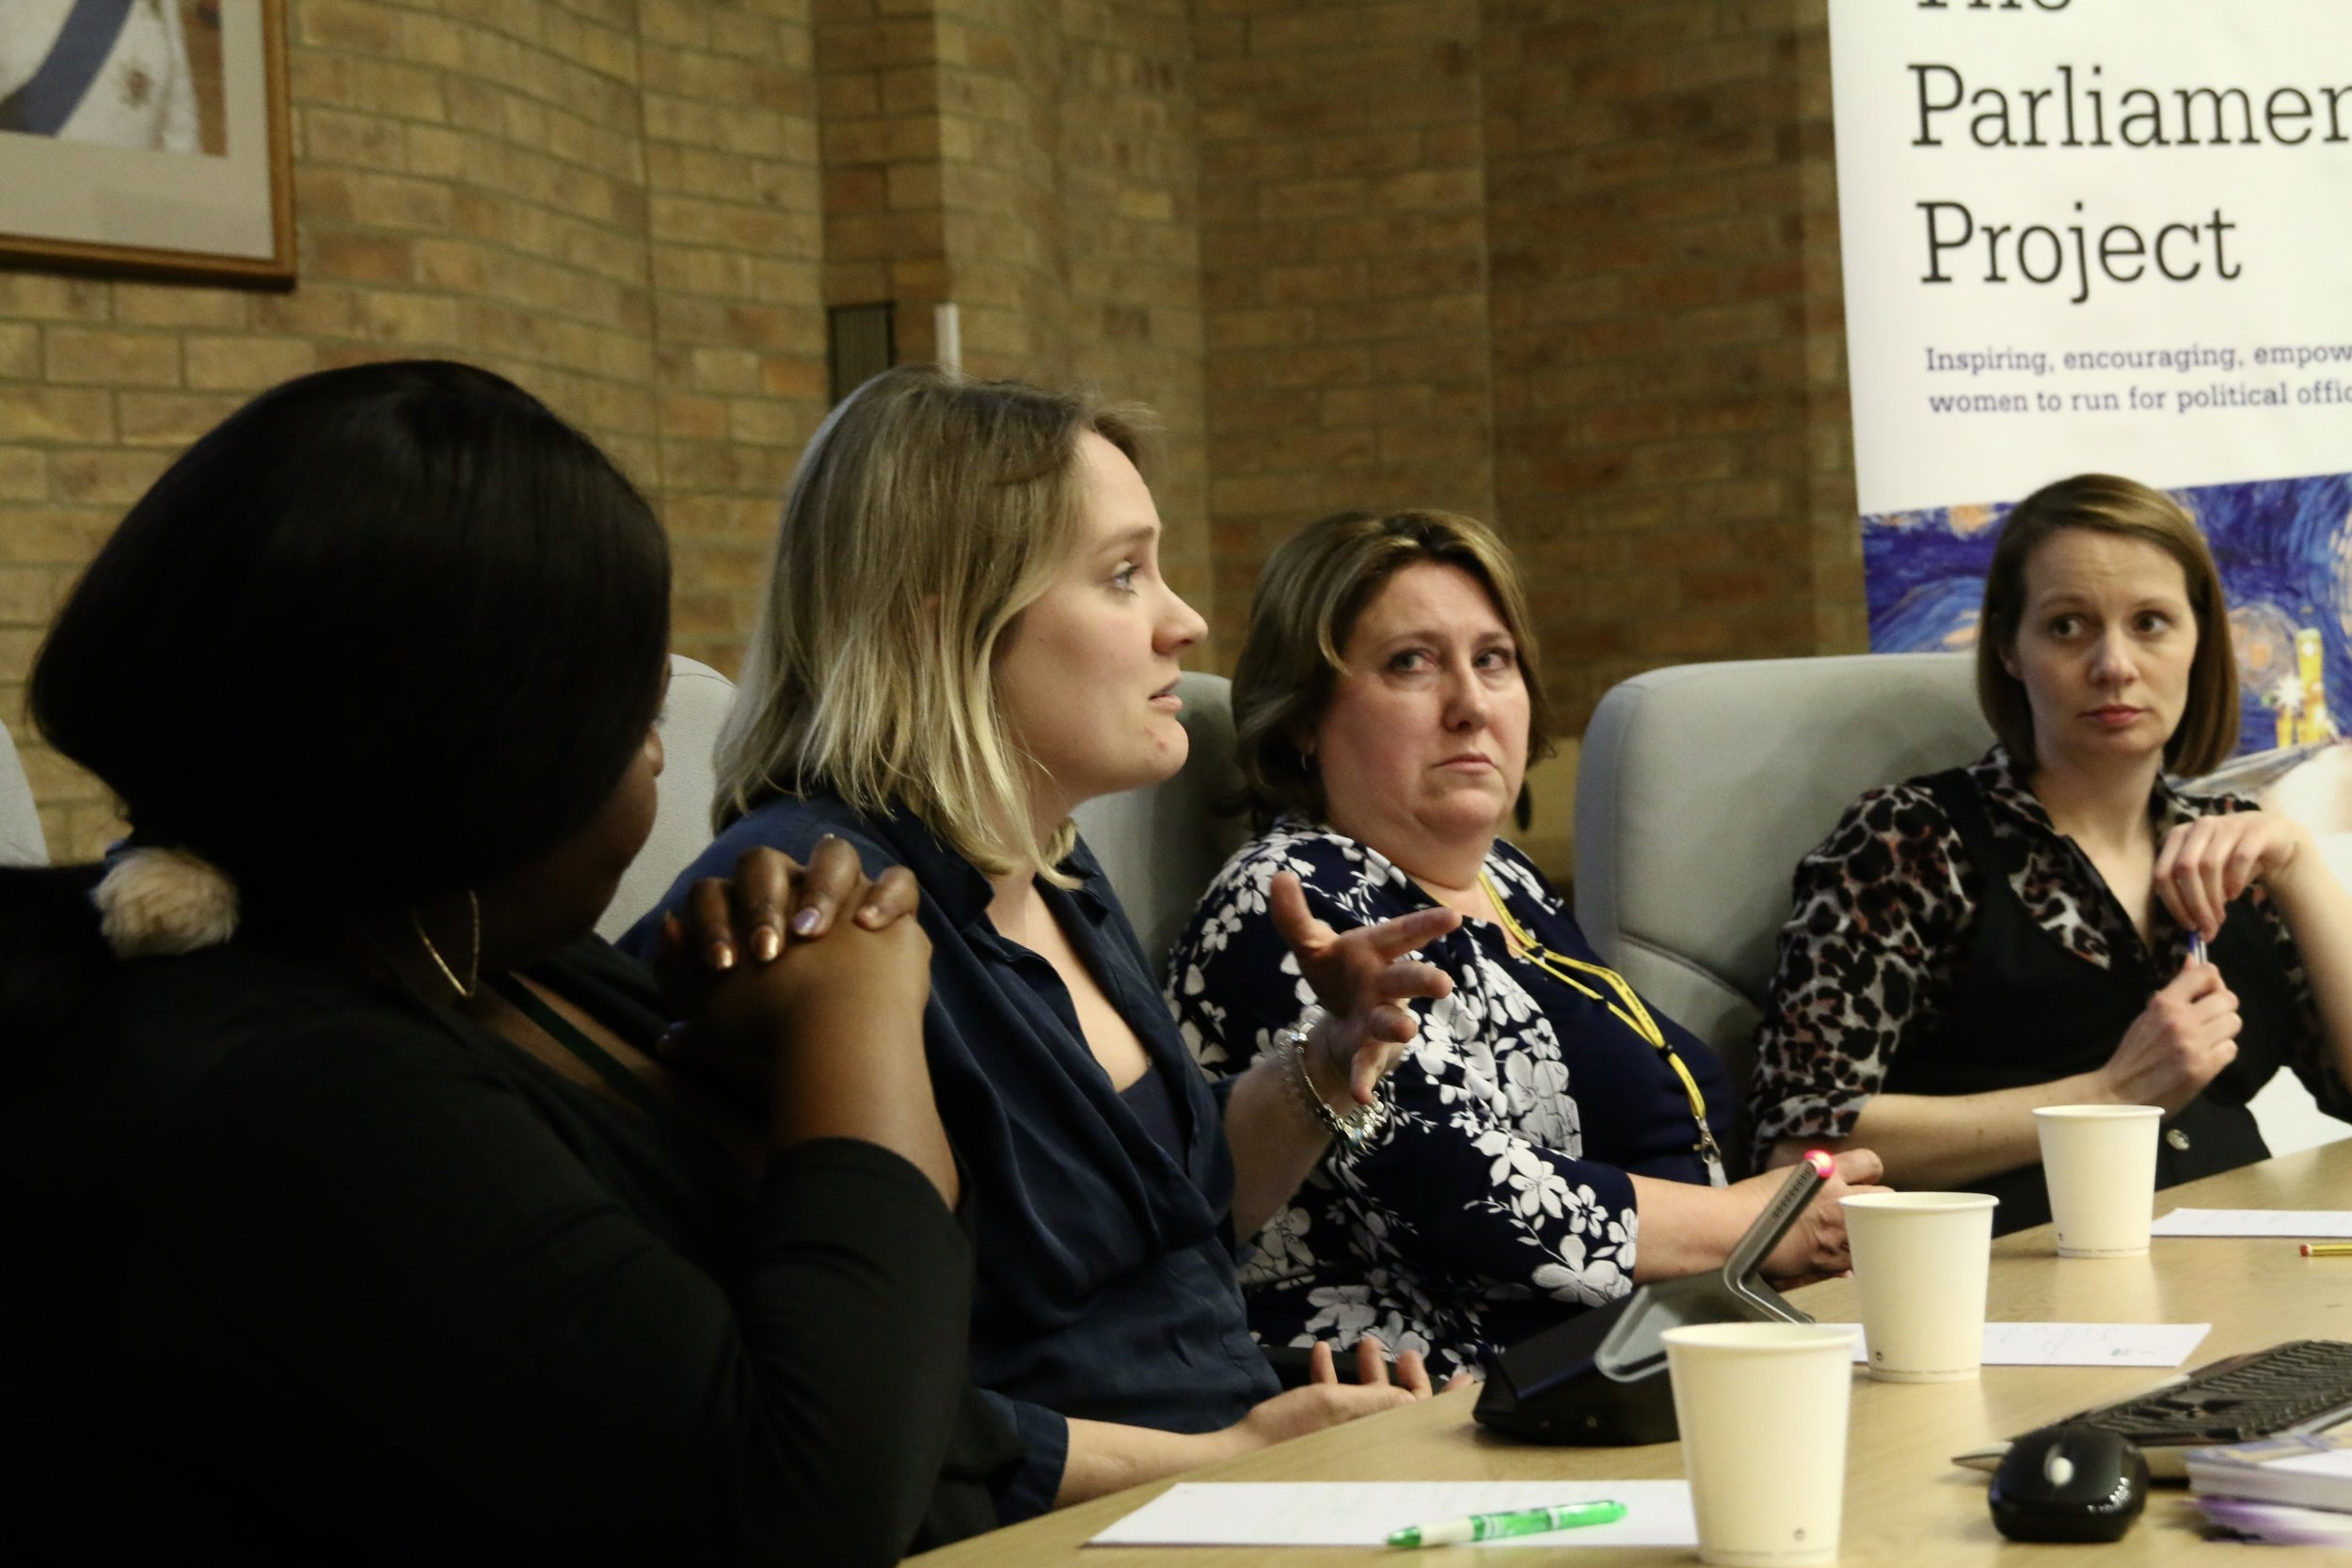 Conservative Councillor Alice Jenkins speaks on a panel at the Parliament Project's recent Milton Keynes event